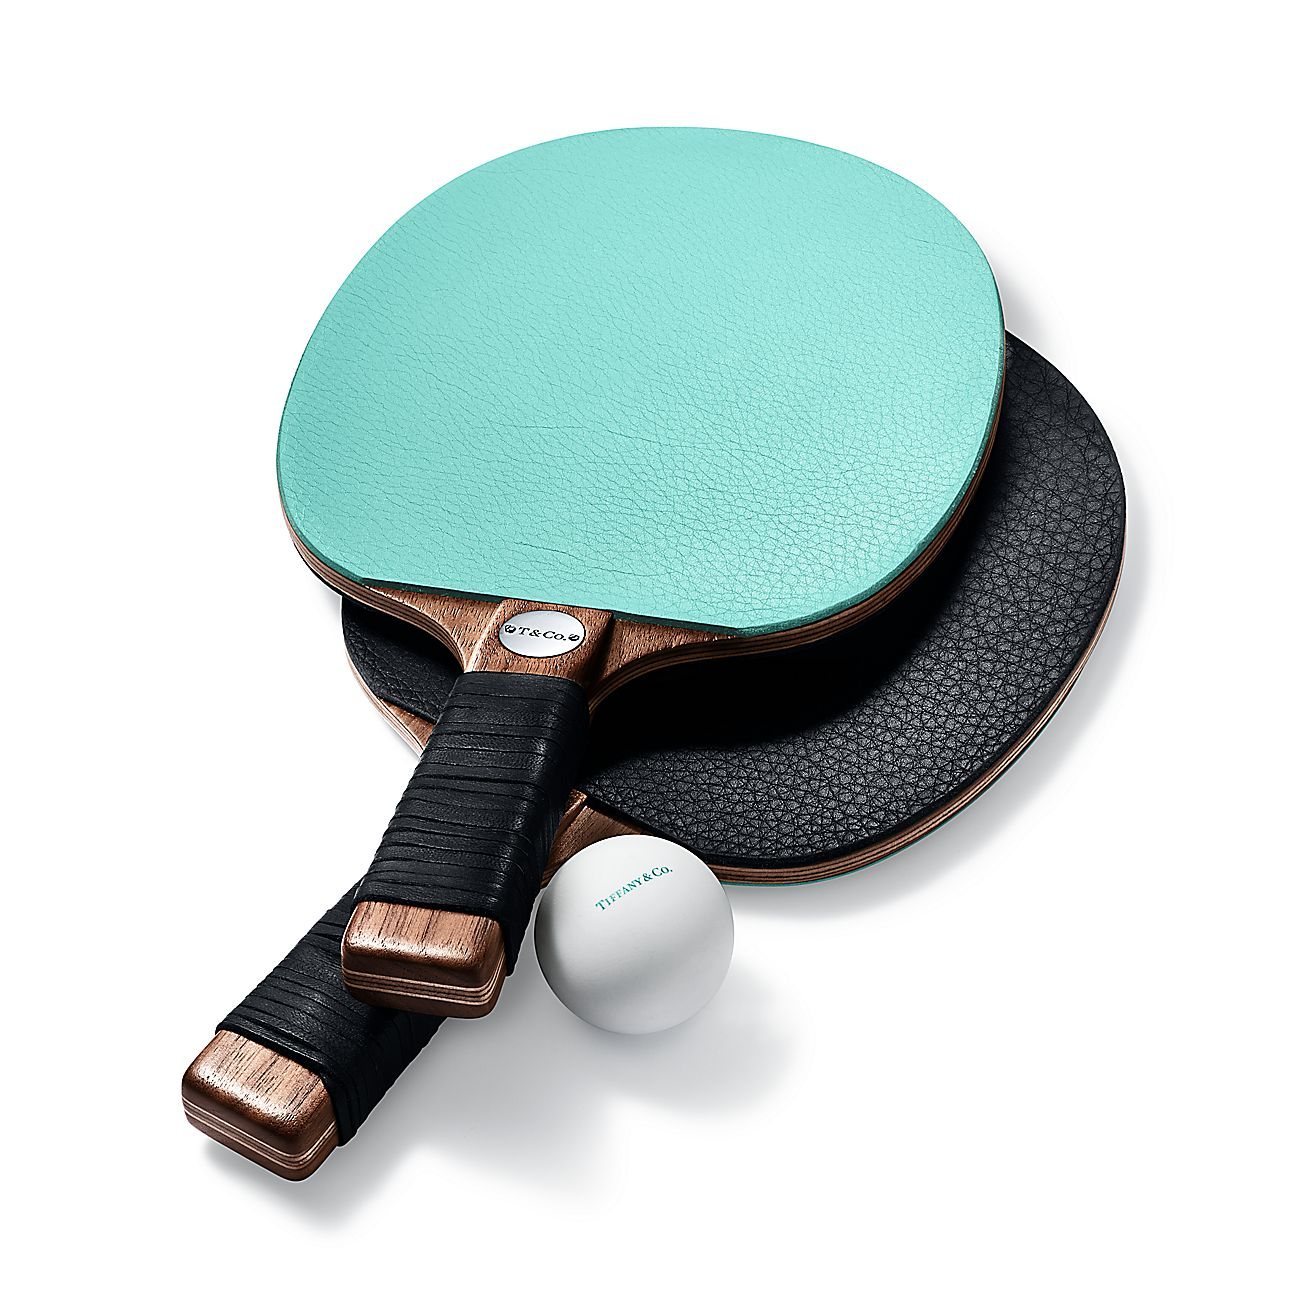 Shop Leather & Reclaimed Walnut Table Tennis Paddles | Tiffany & Co.